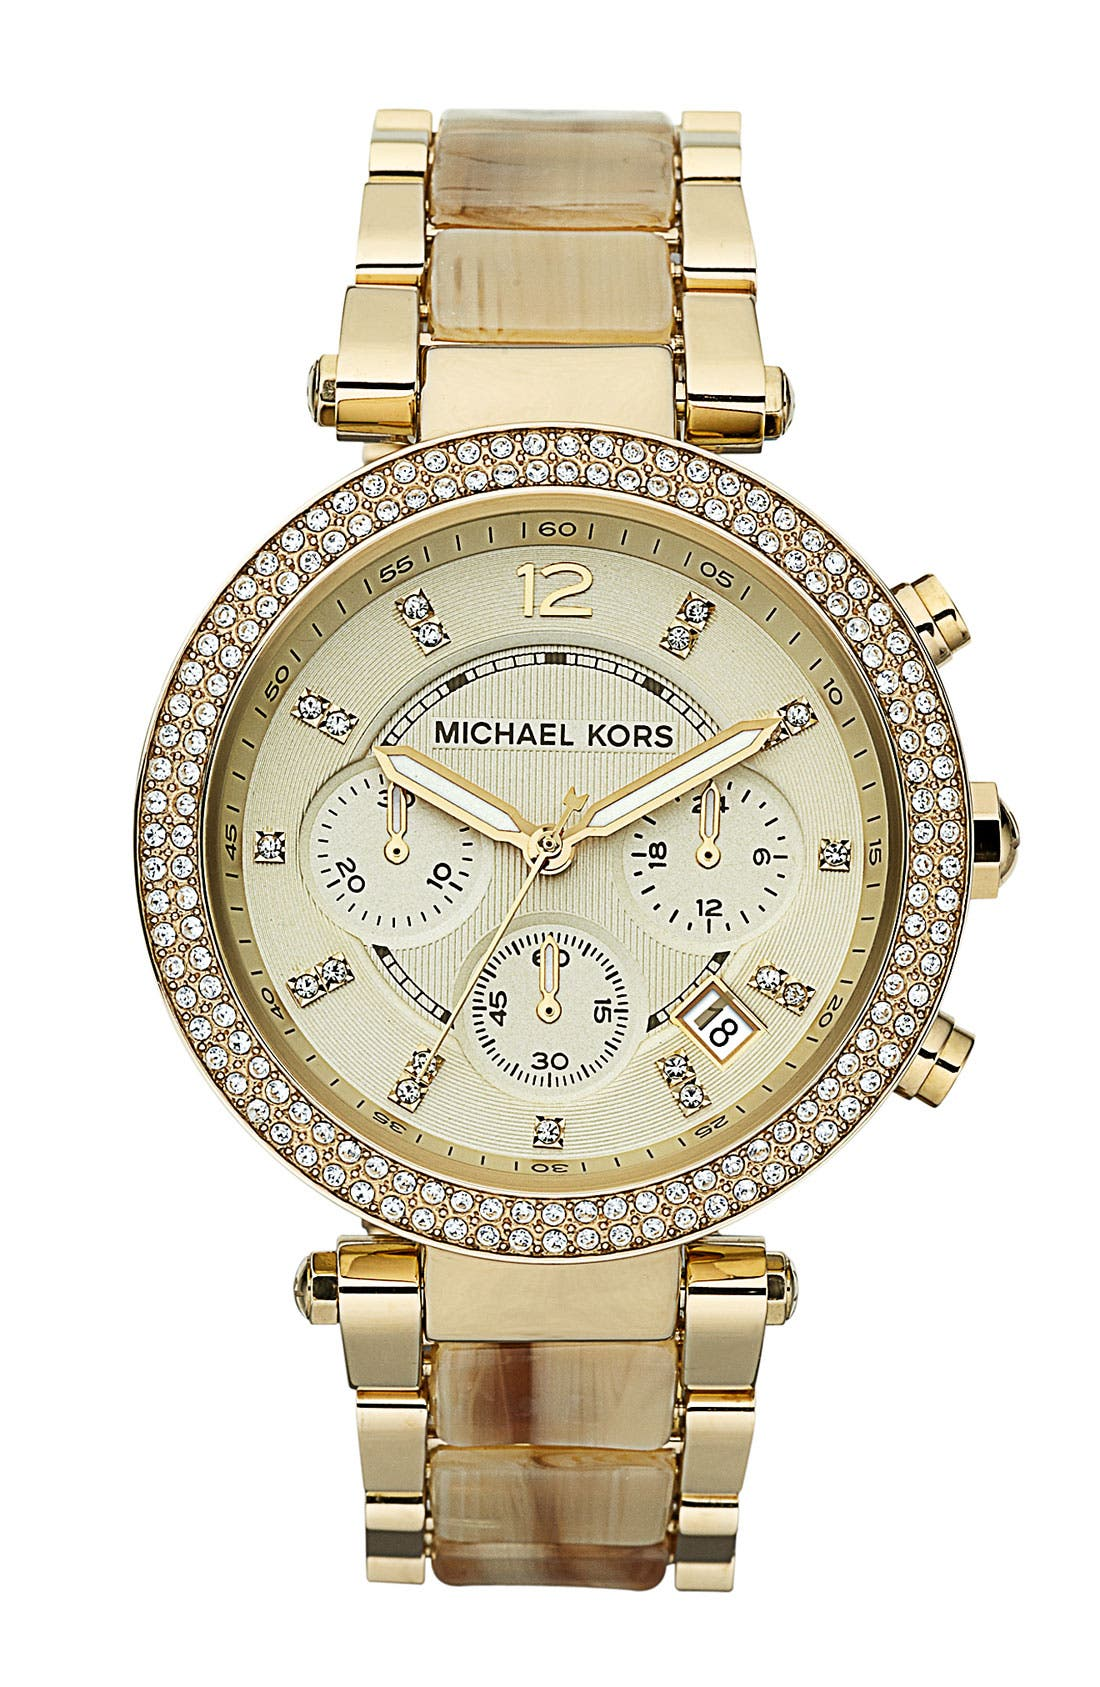 Main Image - Michael Kors 'Parker' Chronograph Watch, 39mm